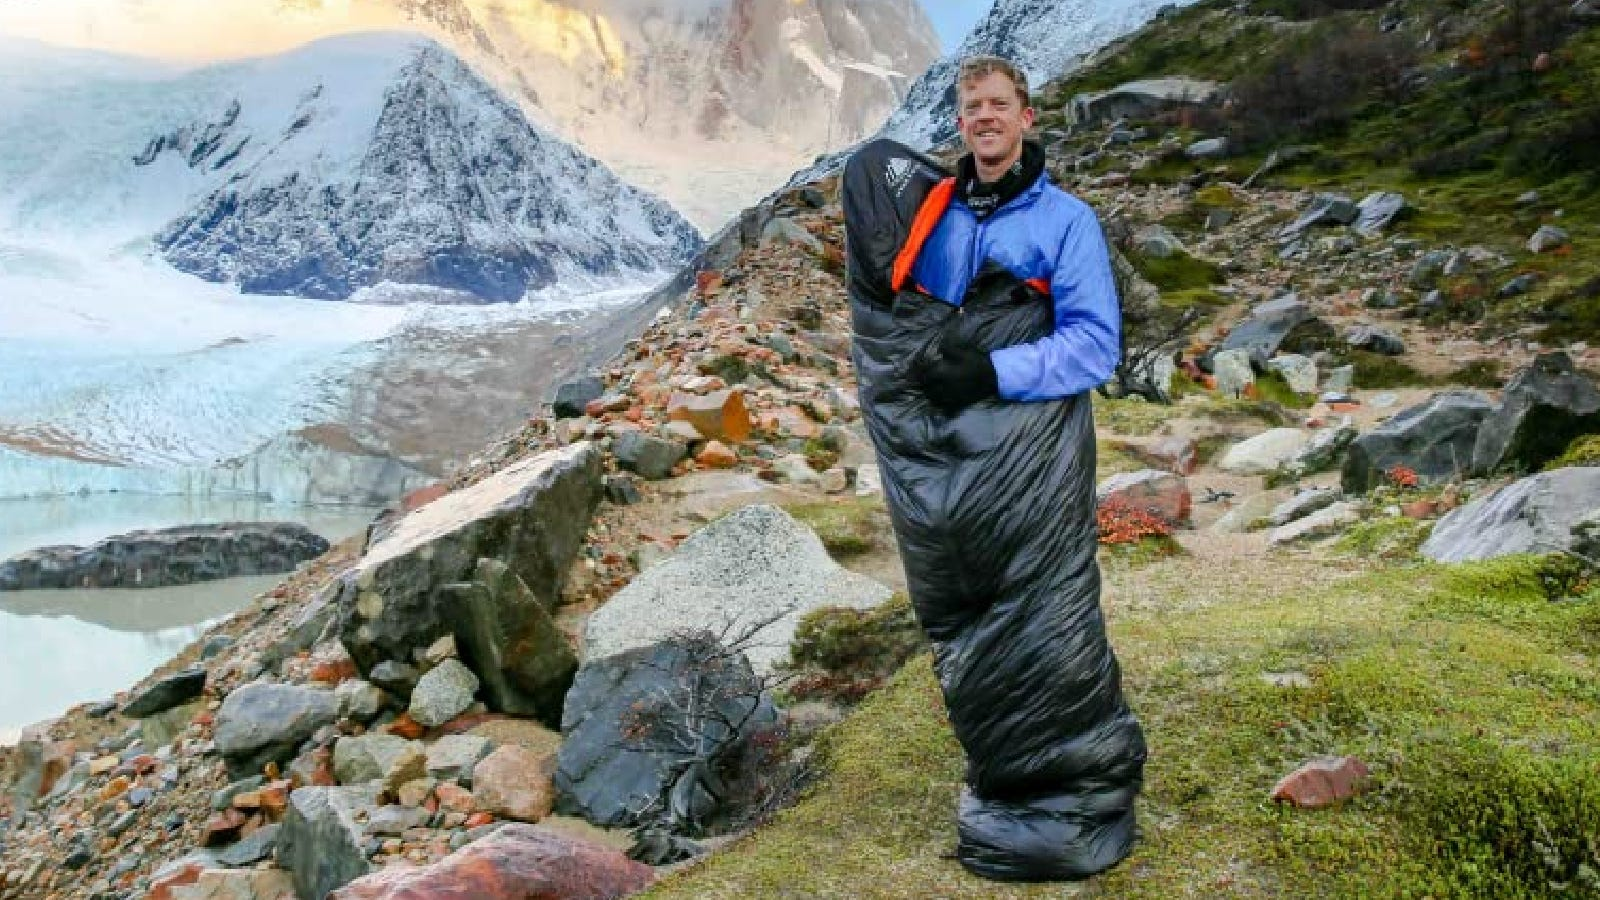 A hiker showing off his new Hyke & Byke mummy sleeping bag with the surrounding views of mountains.